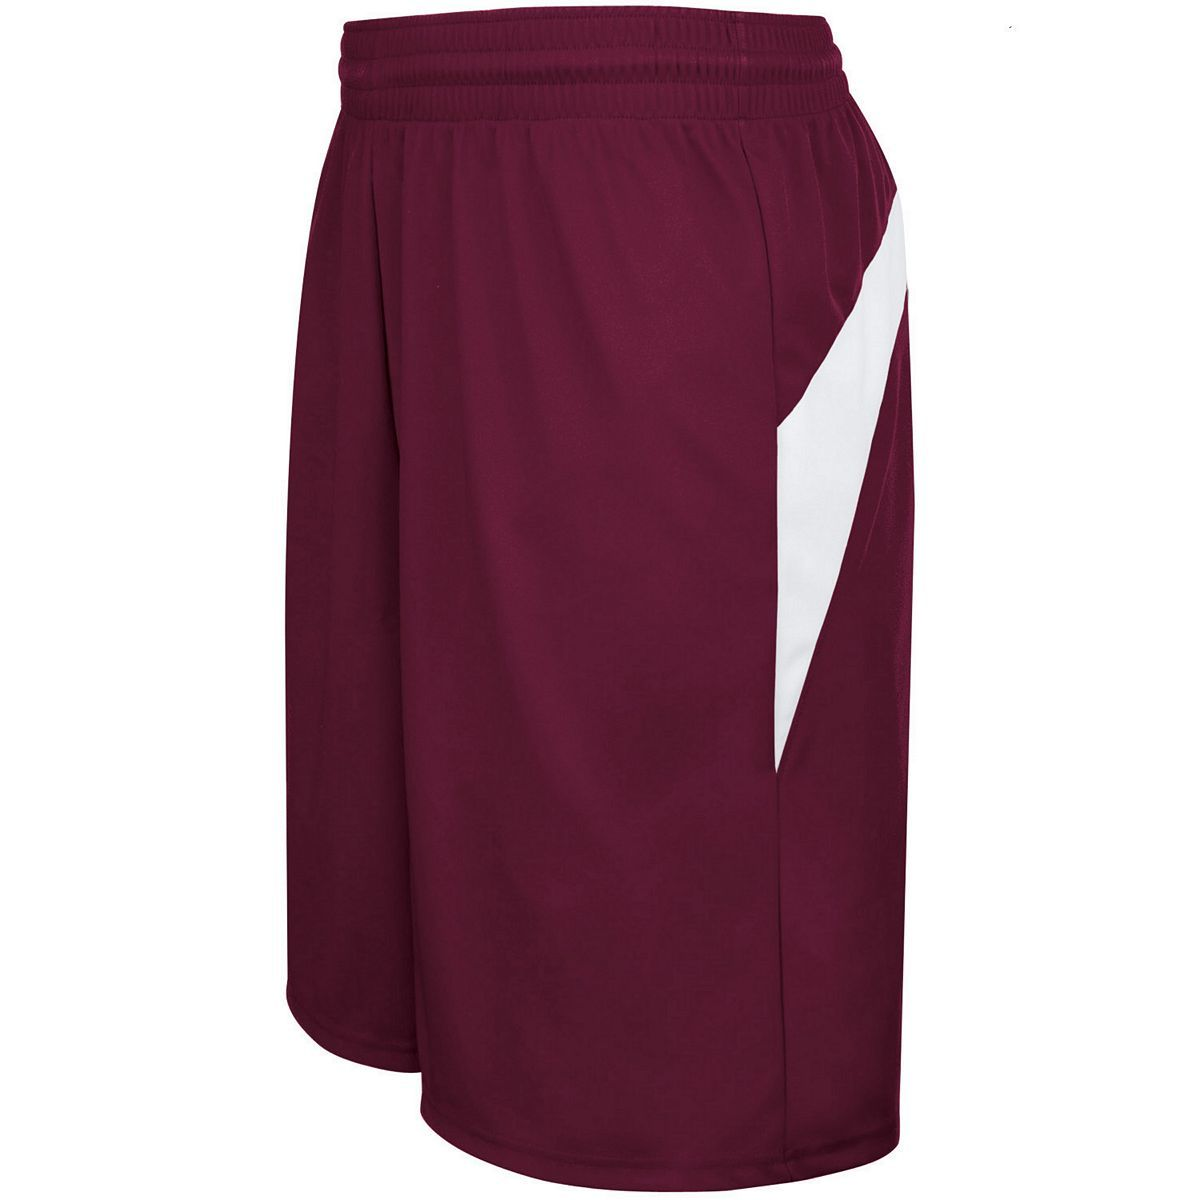 Adult Transition Game Shorts - MAROON/WHITE